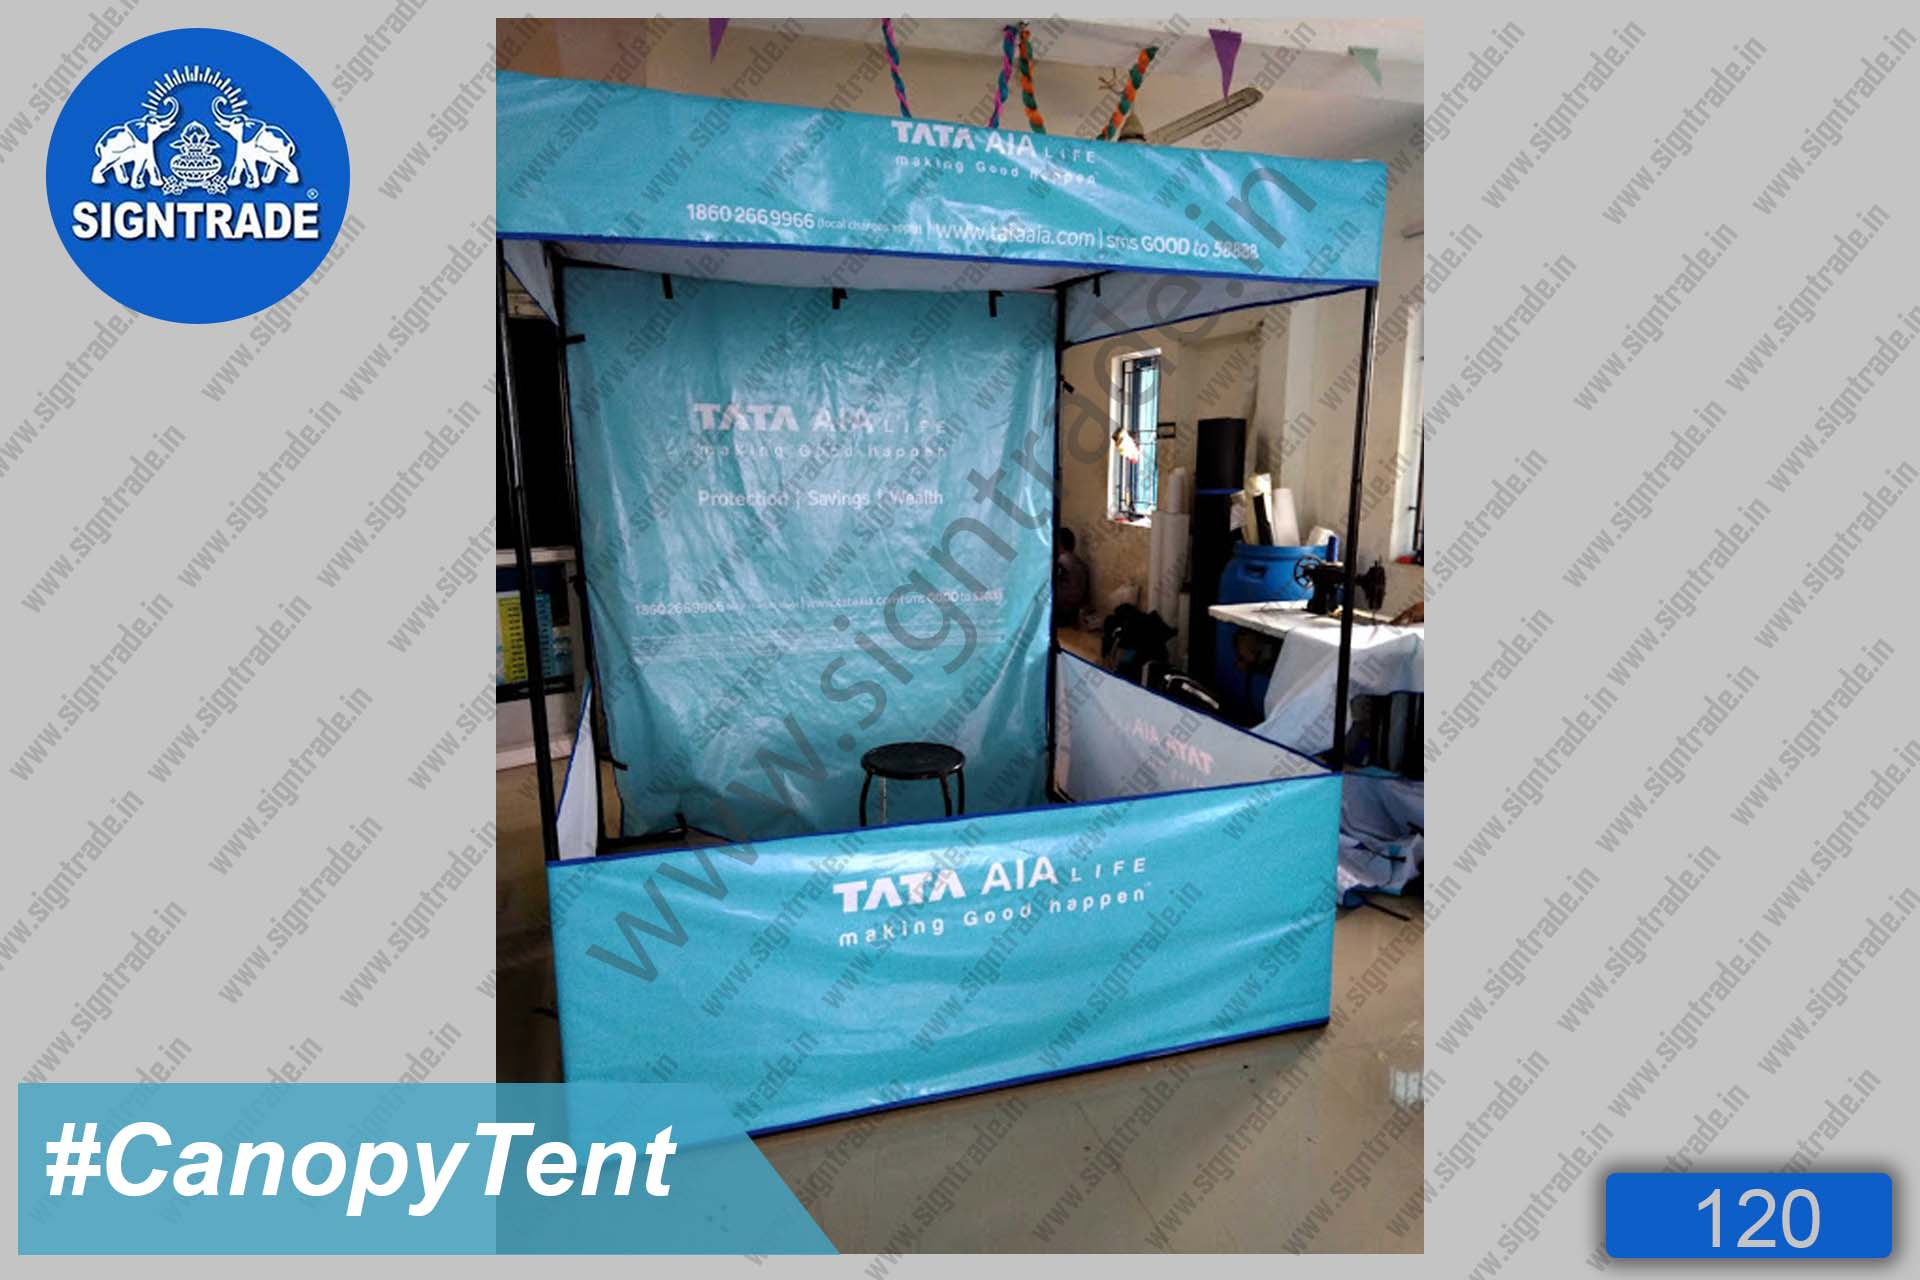 TATA - AIA life insurance - Canopy Tent, Flat Roof Tent